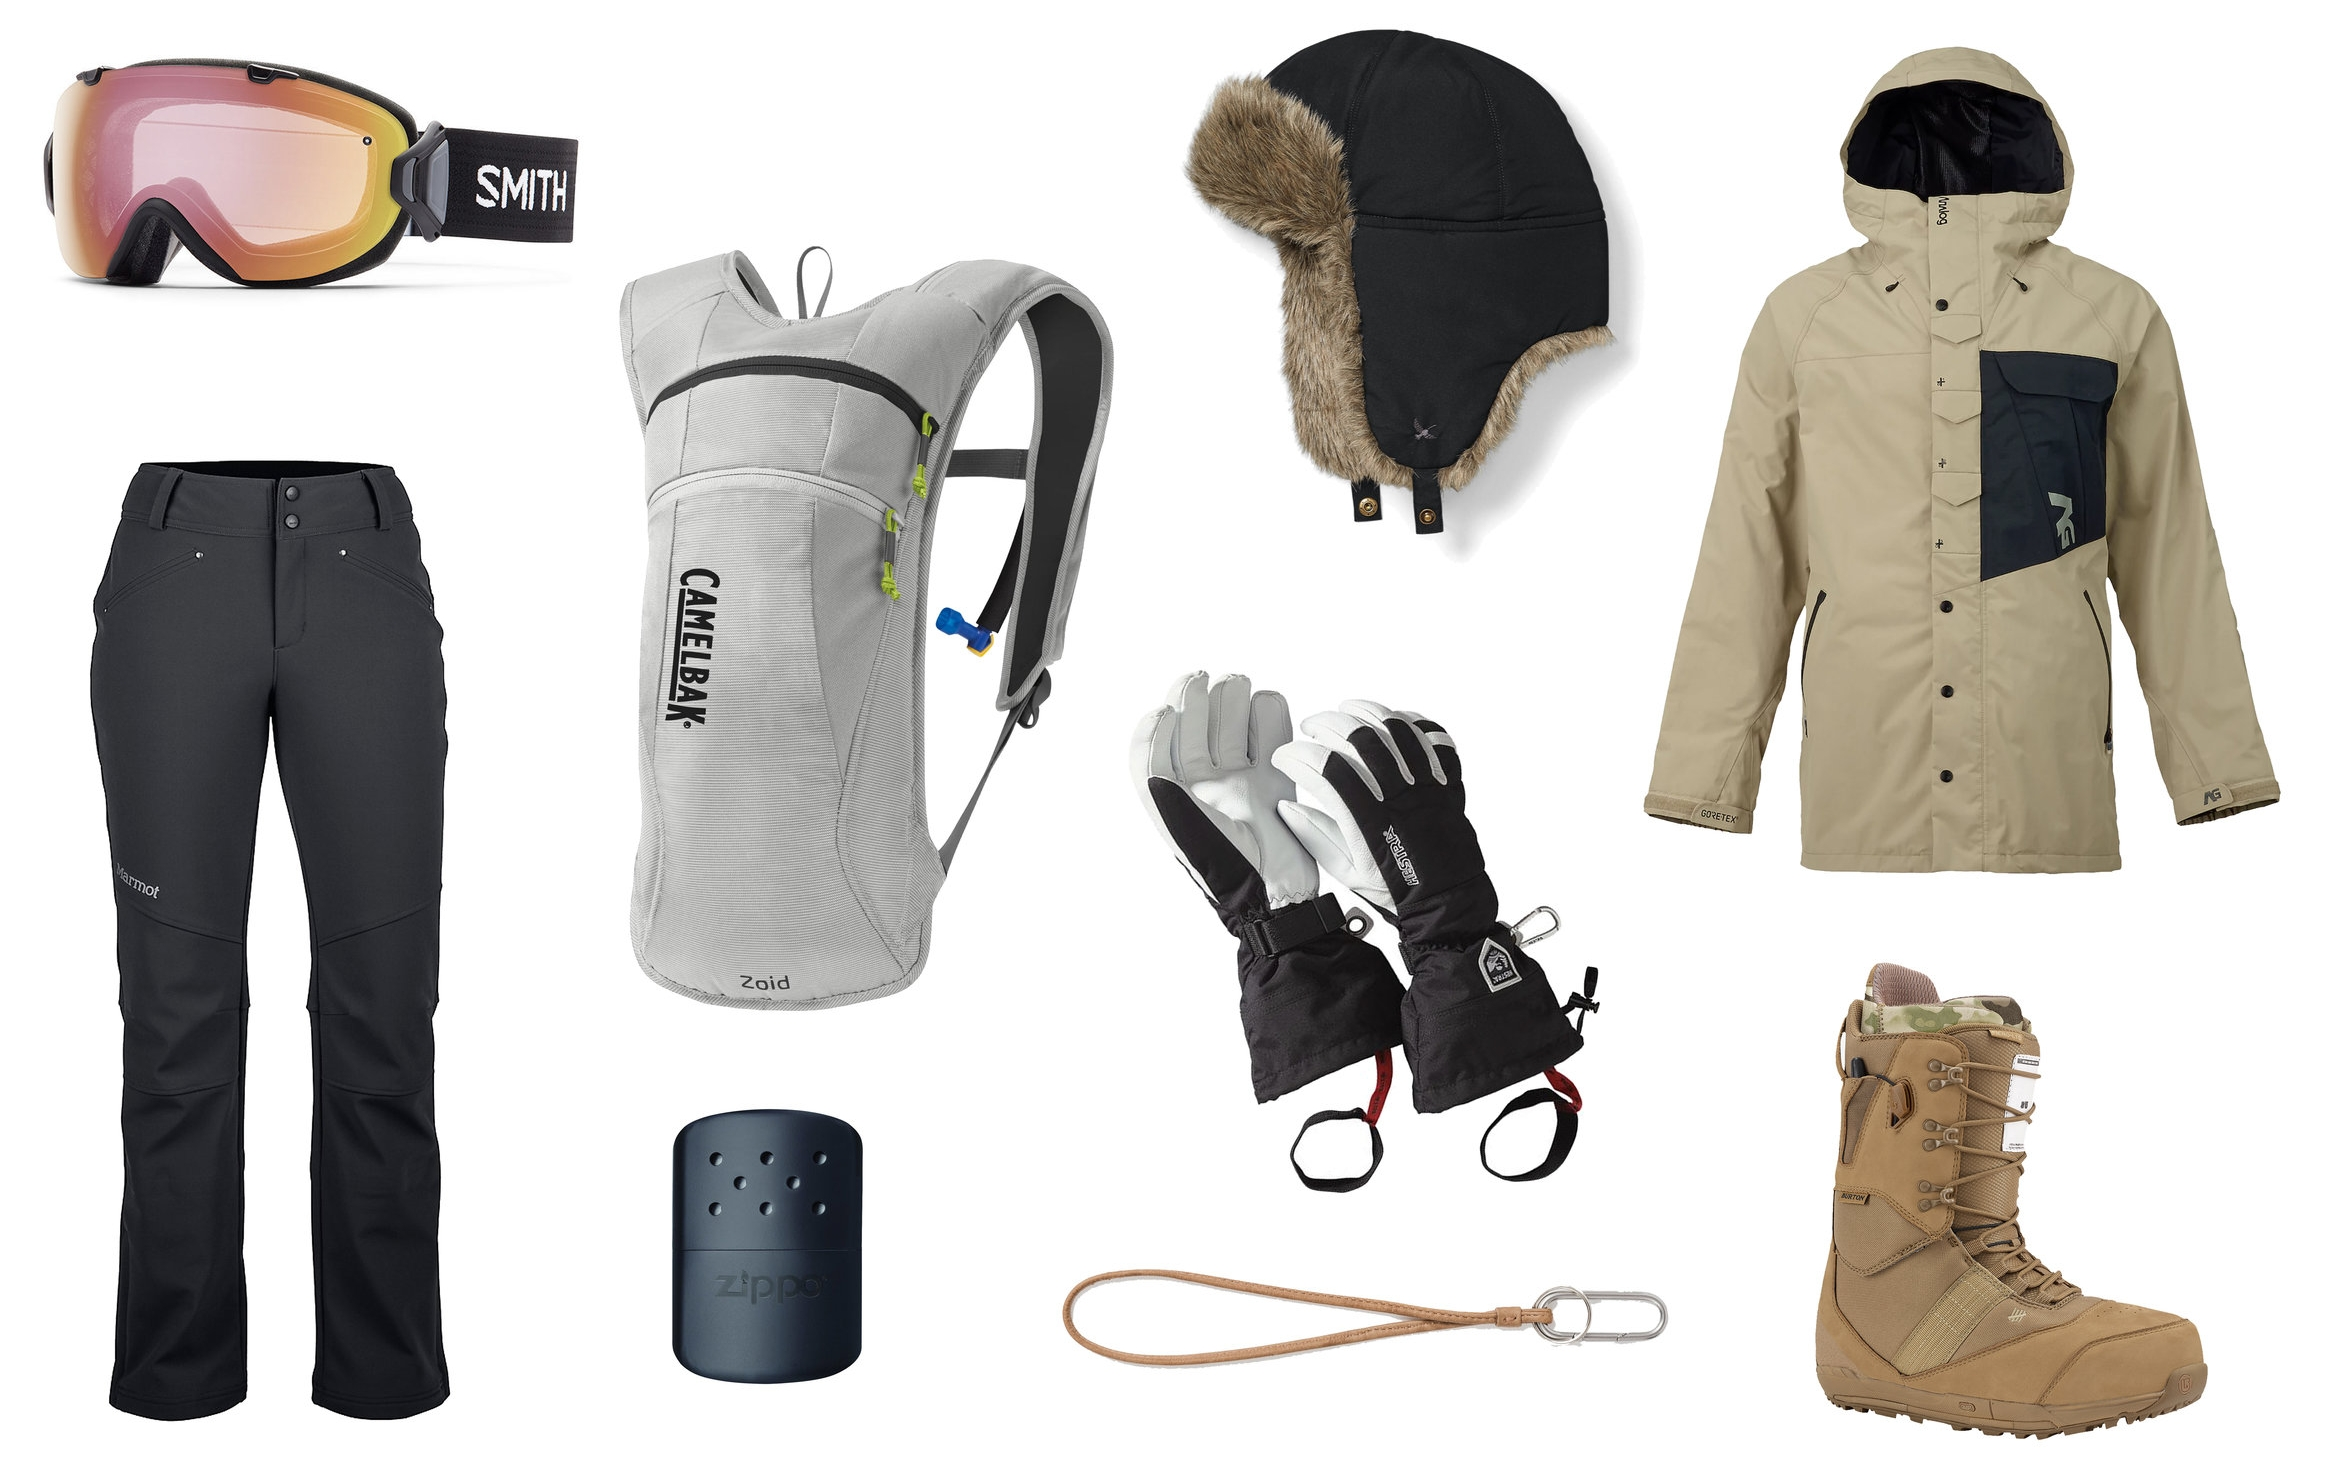 1)  Smith I/OS Photochromic Snow Goggles  2)  CamelBak Zoid Hydration Pack in Silver  3)  Eddie Bauer Down Aviator Hat in Dk Smoke   4)  Analog Zenith Gore-Tex Snowboard Jacket  5)  Marmot Wm's Kate Pant in Black  6)  Zippo 12-Hour Hand Warmer in Black  7)  Hestra Heli Glove  8)  Leather Keyring Lanyard  9)  Burton 2016 Fiend LTD Snowboard Boots UNDFTD